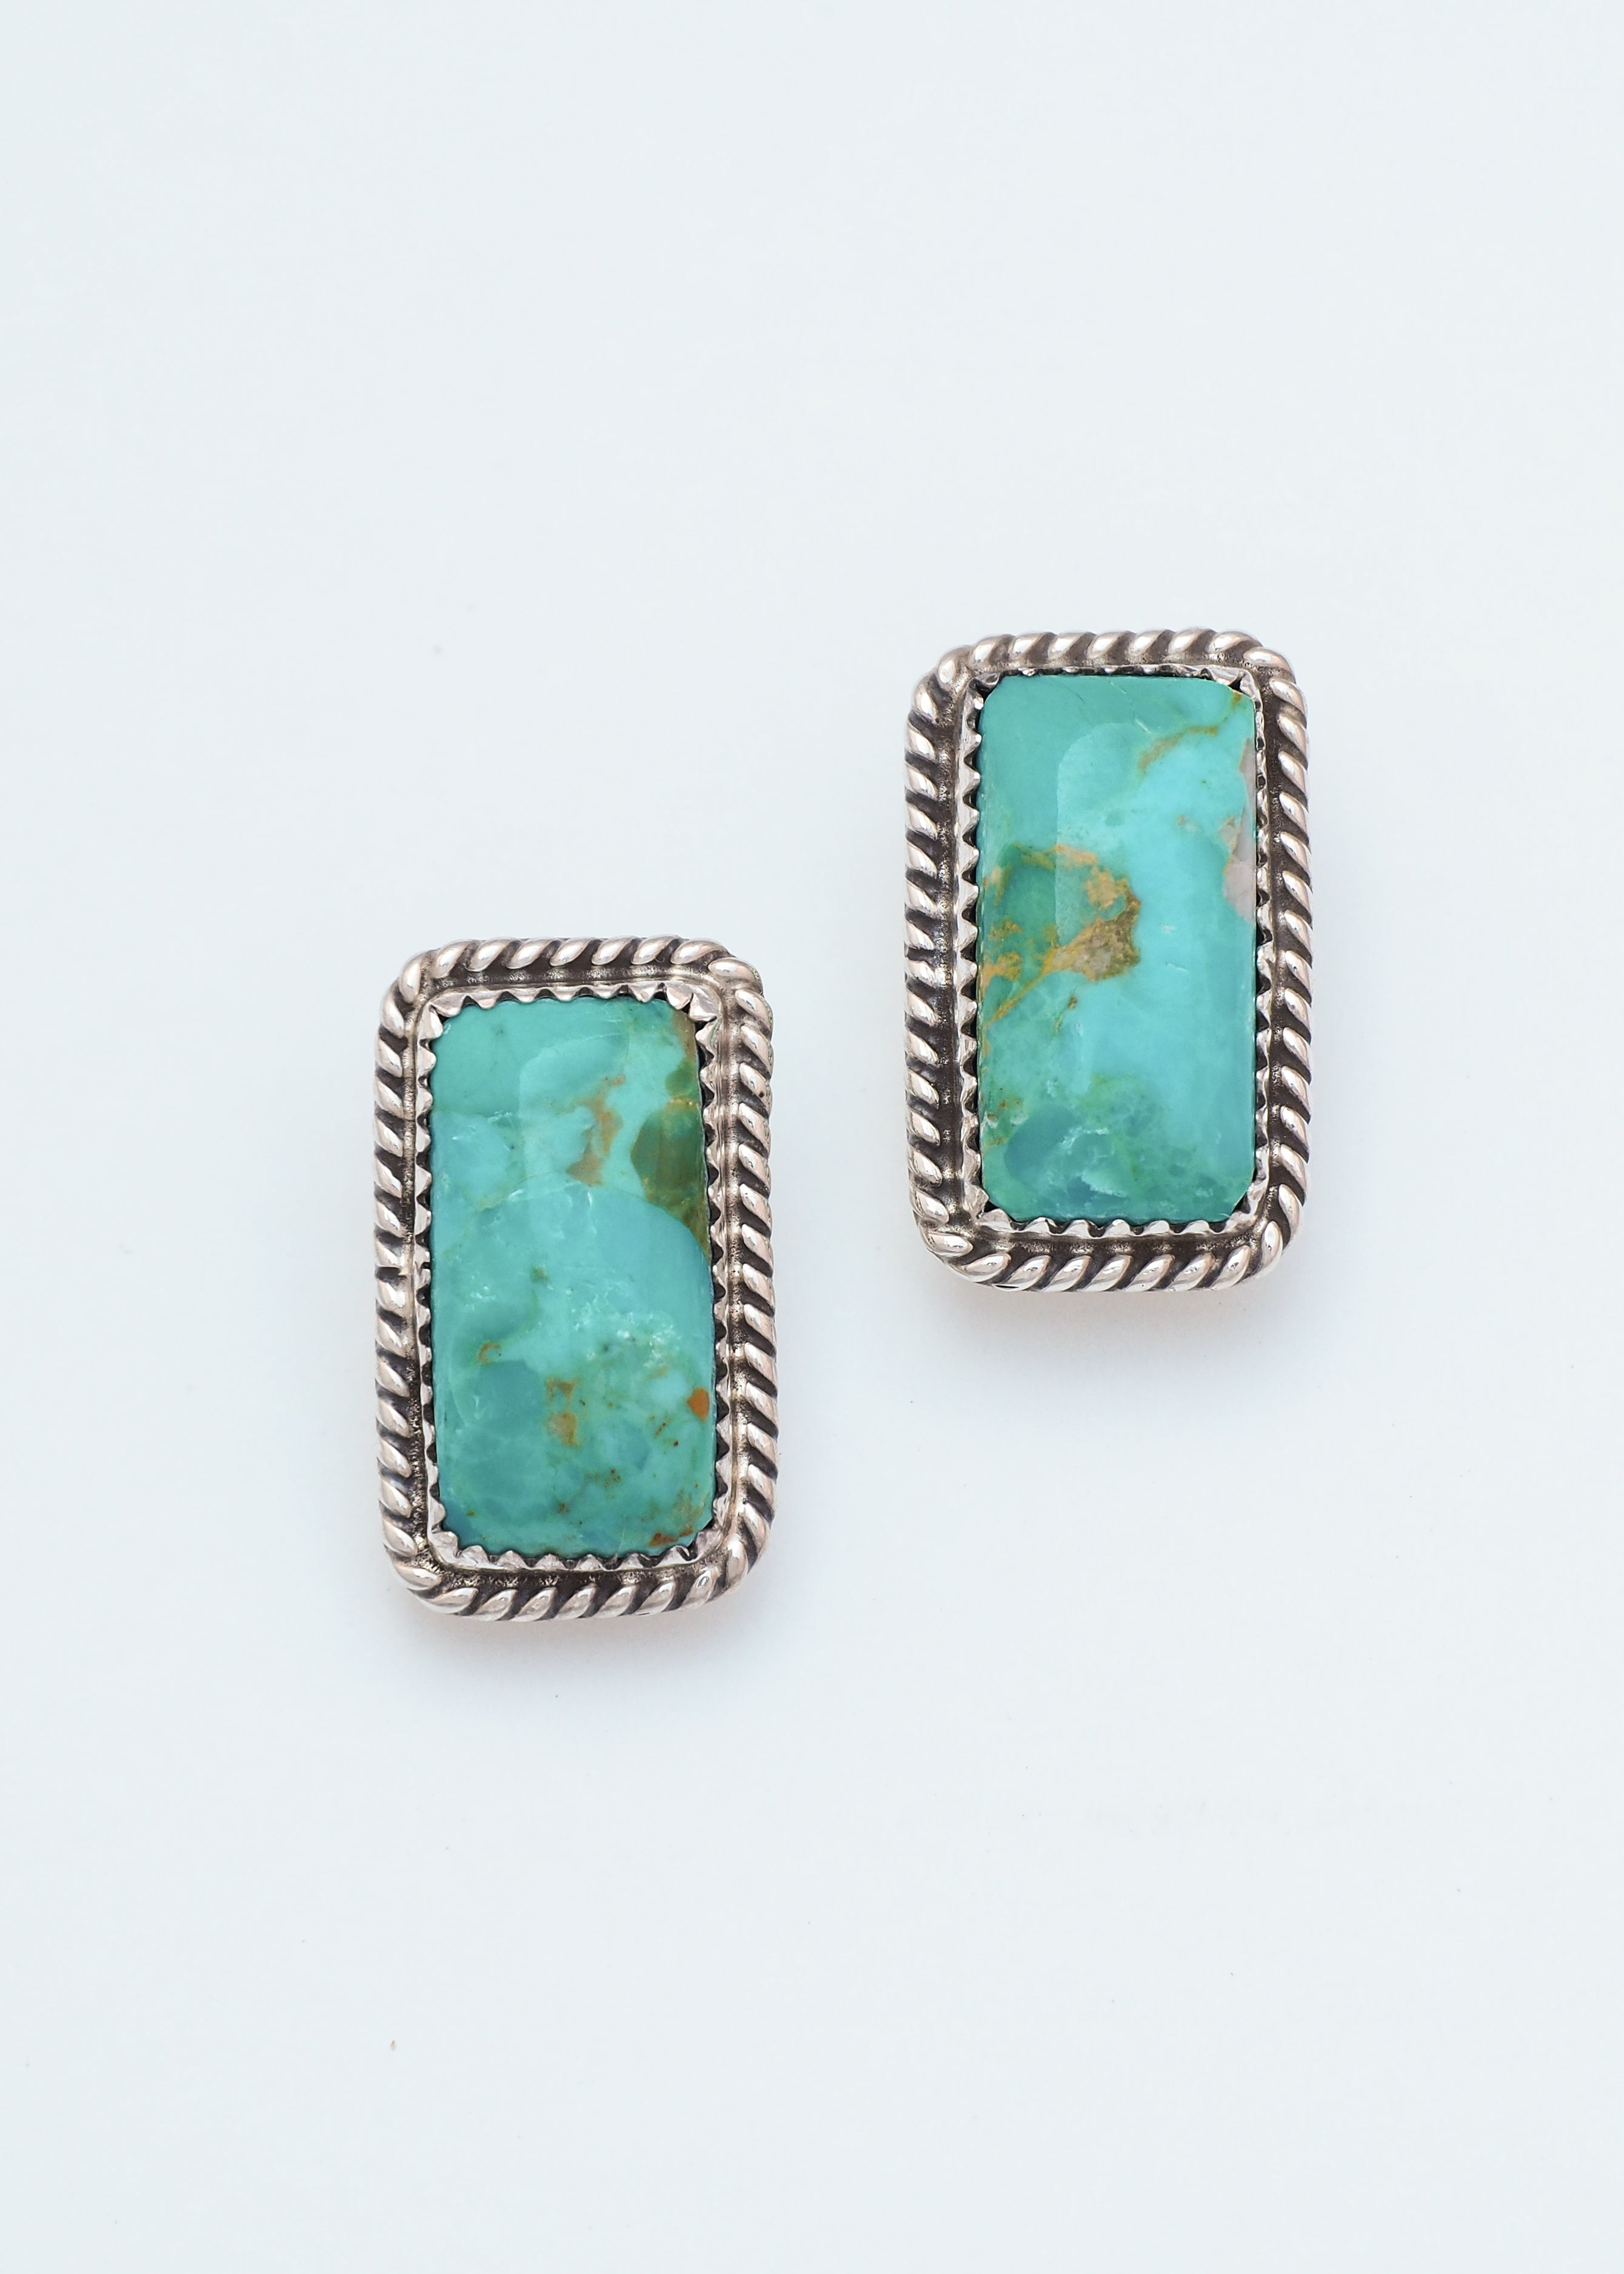 Kingman Turquoise Earrings I